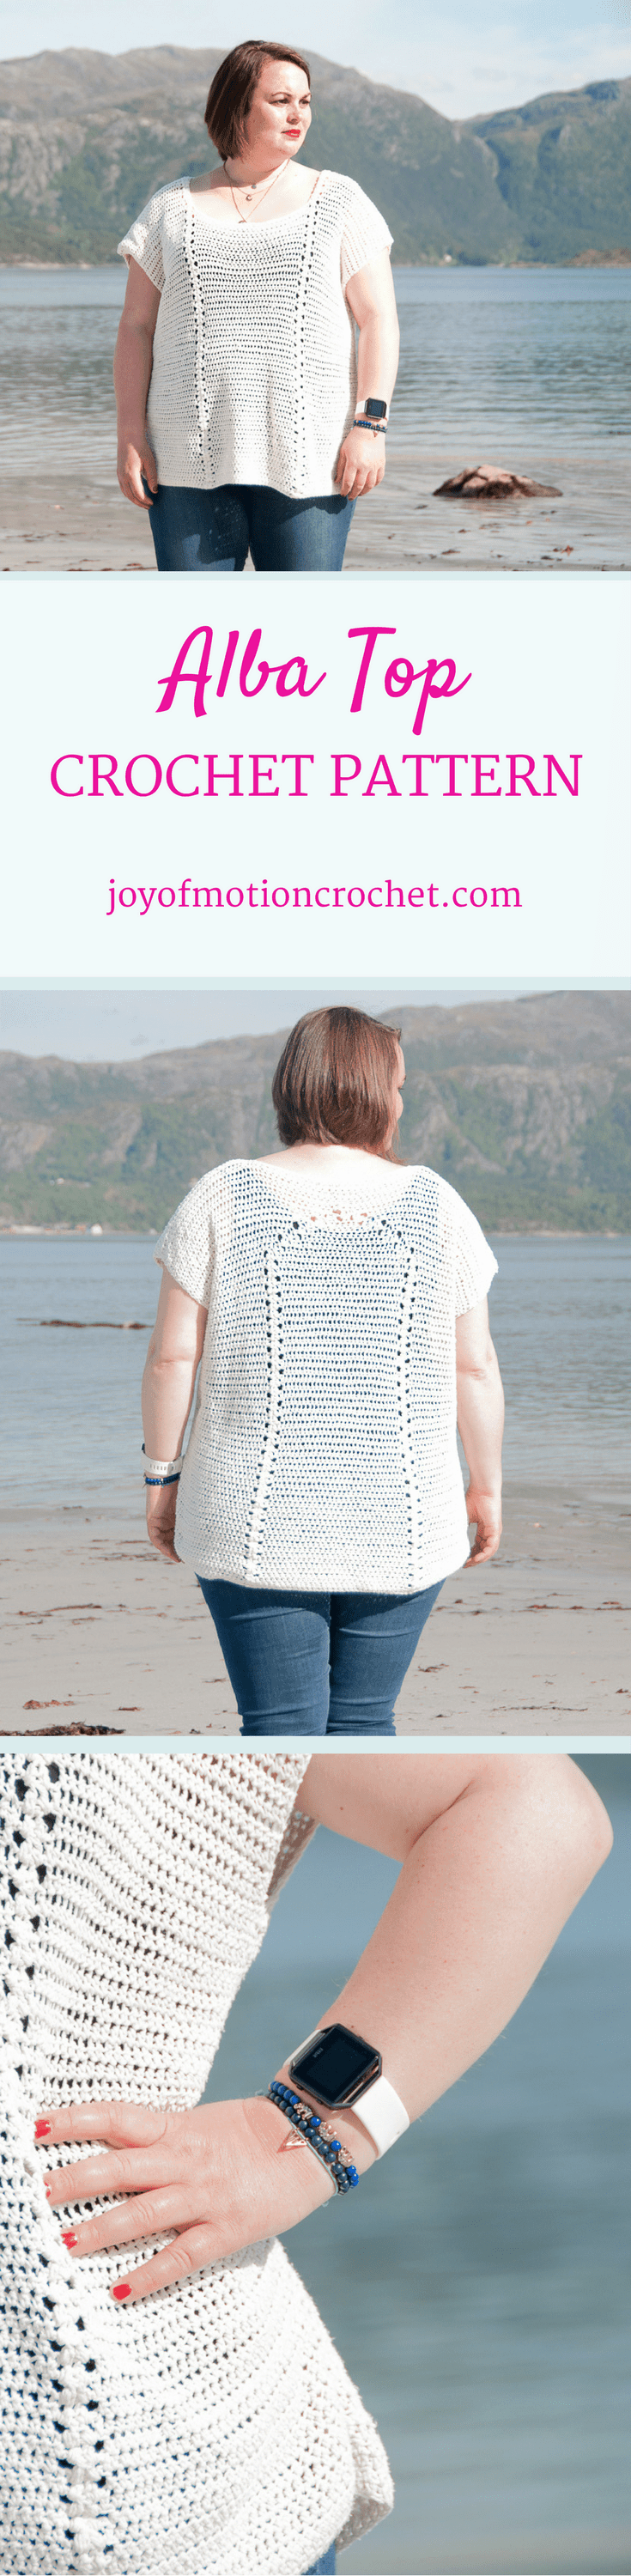 The Alba top a crochet pattern. Woman's top crochet pattern with skill level easy. Make this fashionable crochet top with your own crochet hook & yarn. Top crochet pattern easy for her. Top crochet pattern easy for her. | crochet top | woman's crochet top | crochet pattern for her | fashionable crochet top | interesting crochet top | Click to purchase or repin to save it forever.